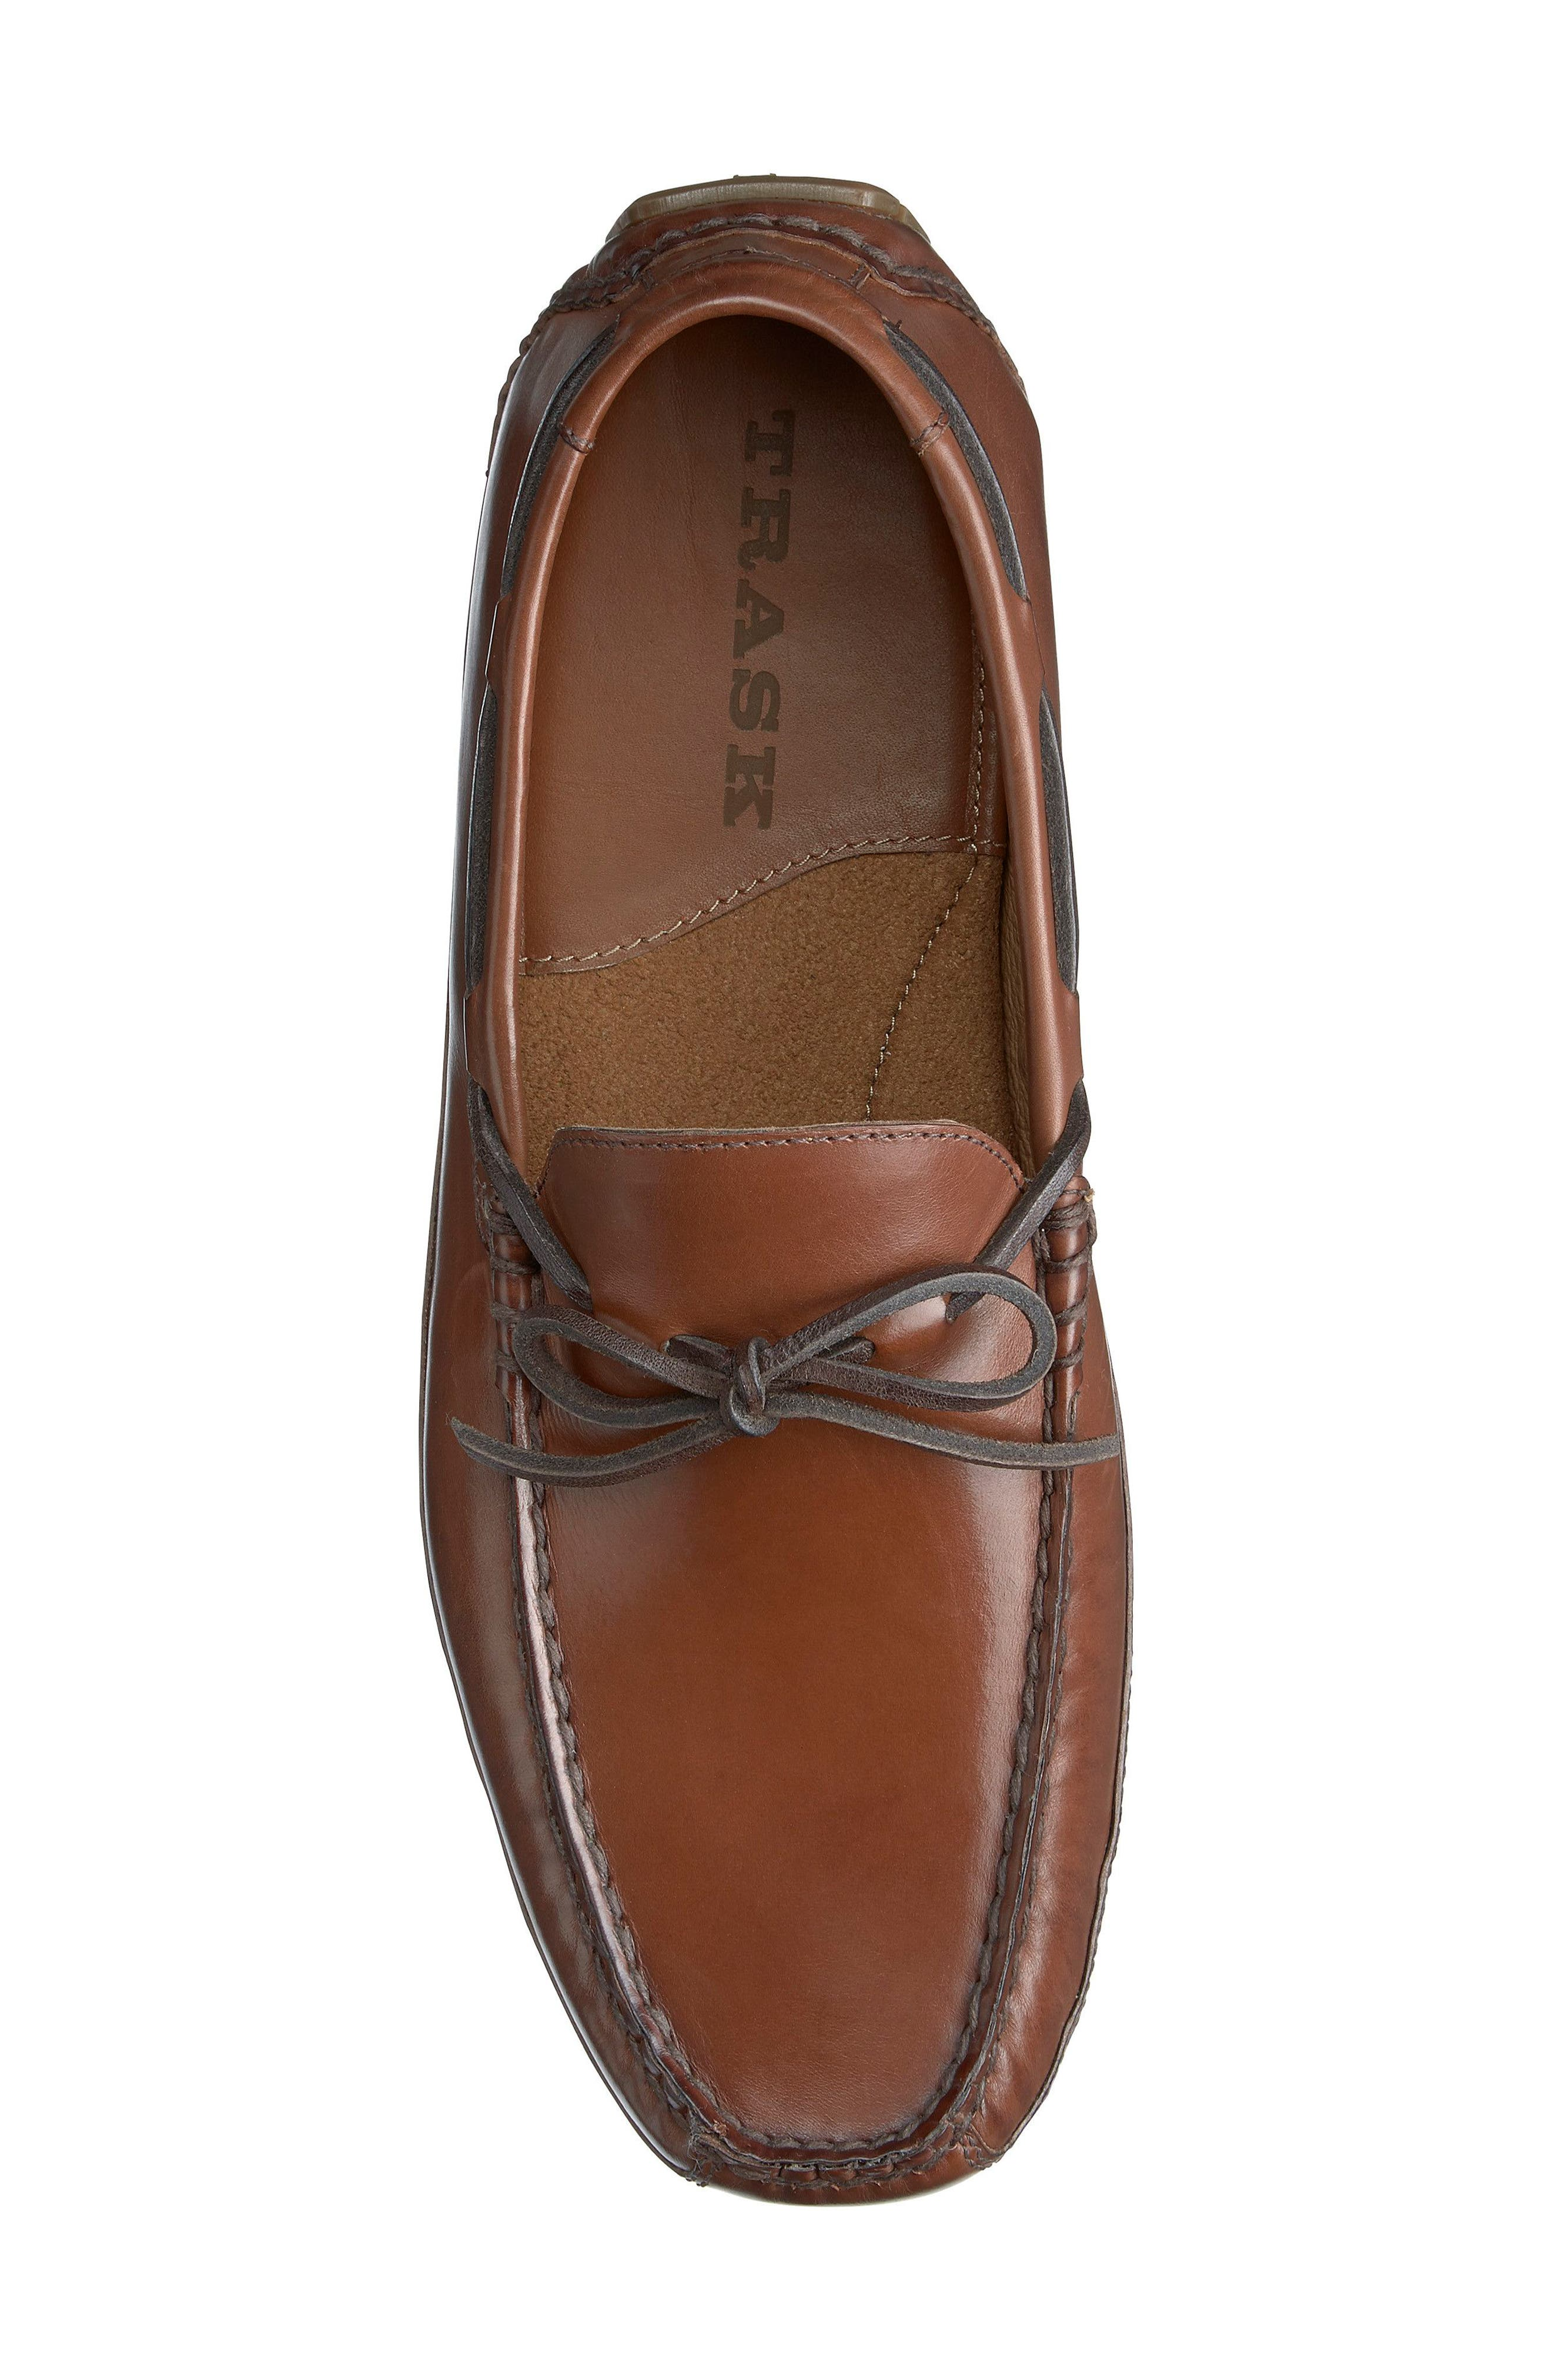 TRASK, Dillion Driving Loafer, Alternate thumbnail 4, color, BROWN LEATHER